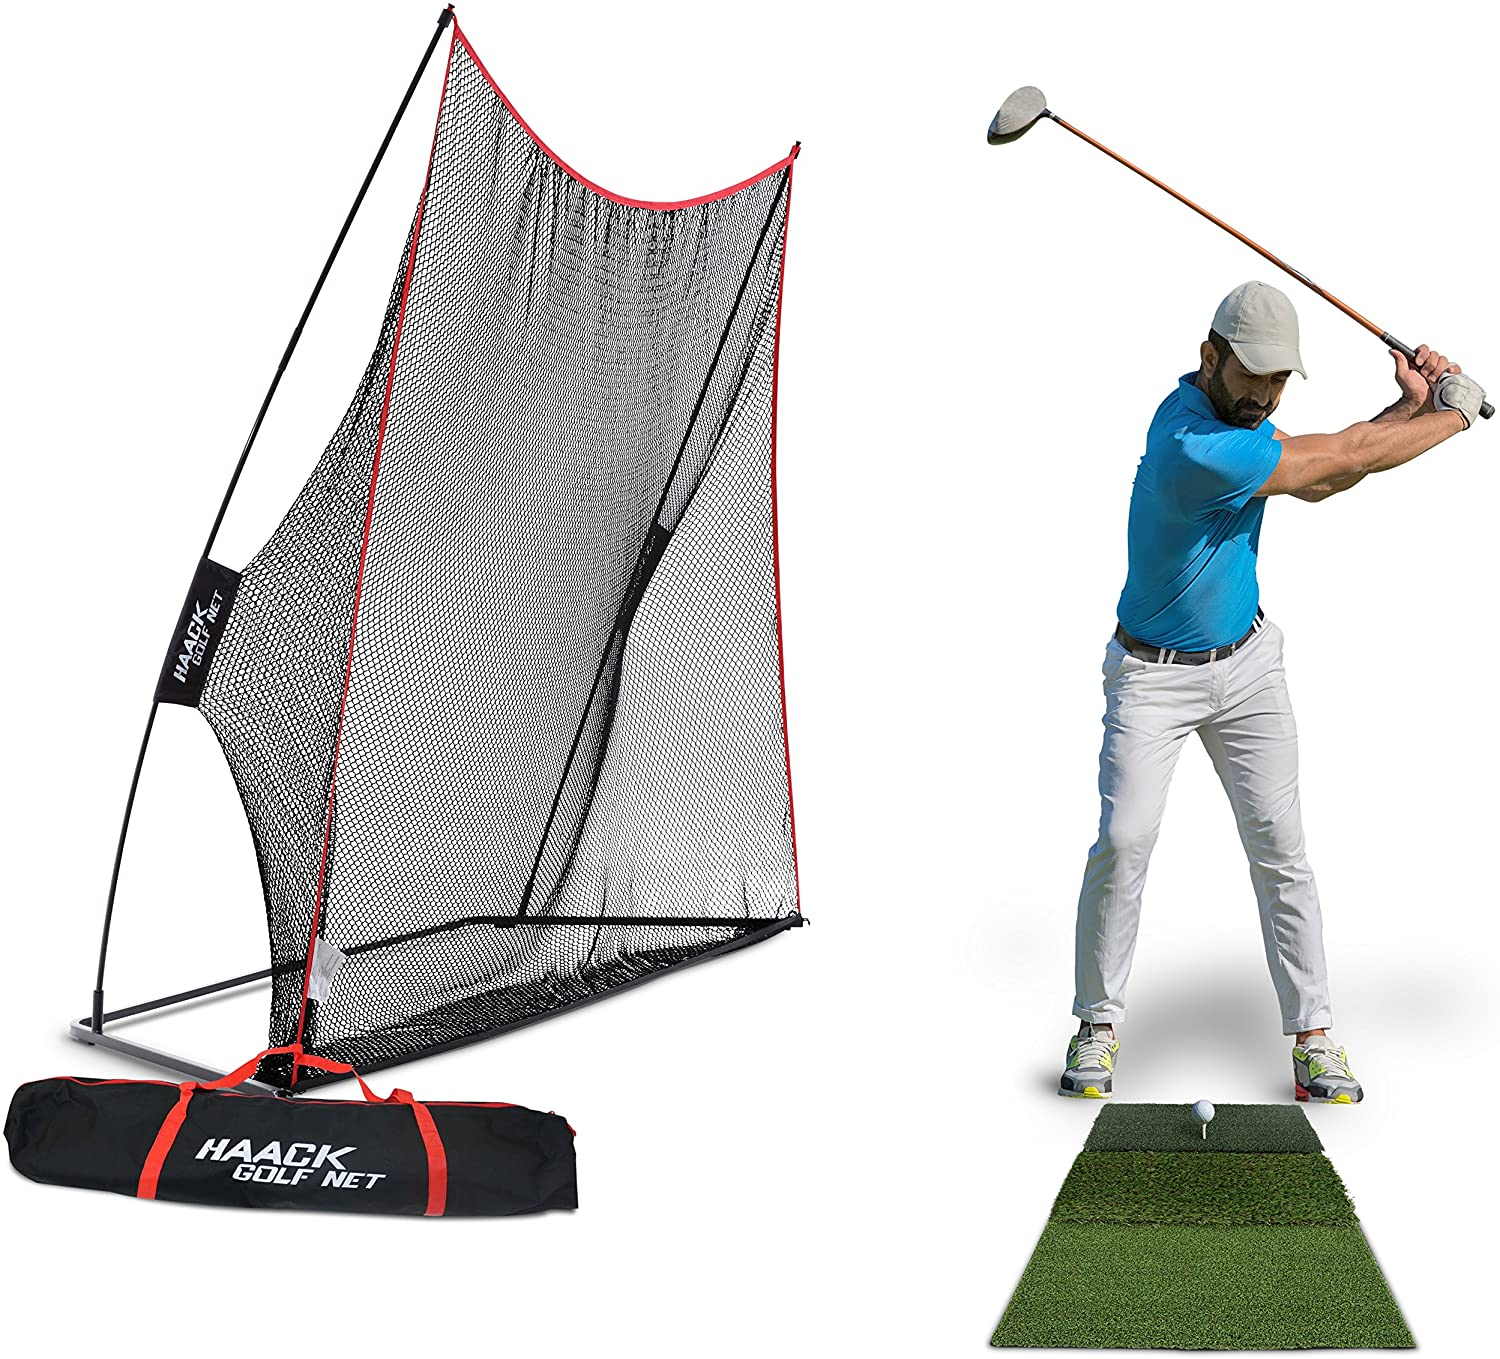 Rukket 3pc Golf Net Bundle, 10x7ft Haack Golf Hitting Net, Tri Turf Mat & Carry Bag, Practice Driving Indoor and Outdoor, Golfing at Home Swing Training Aids by SEC Coach Chris Haack : Sports & Outdoors